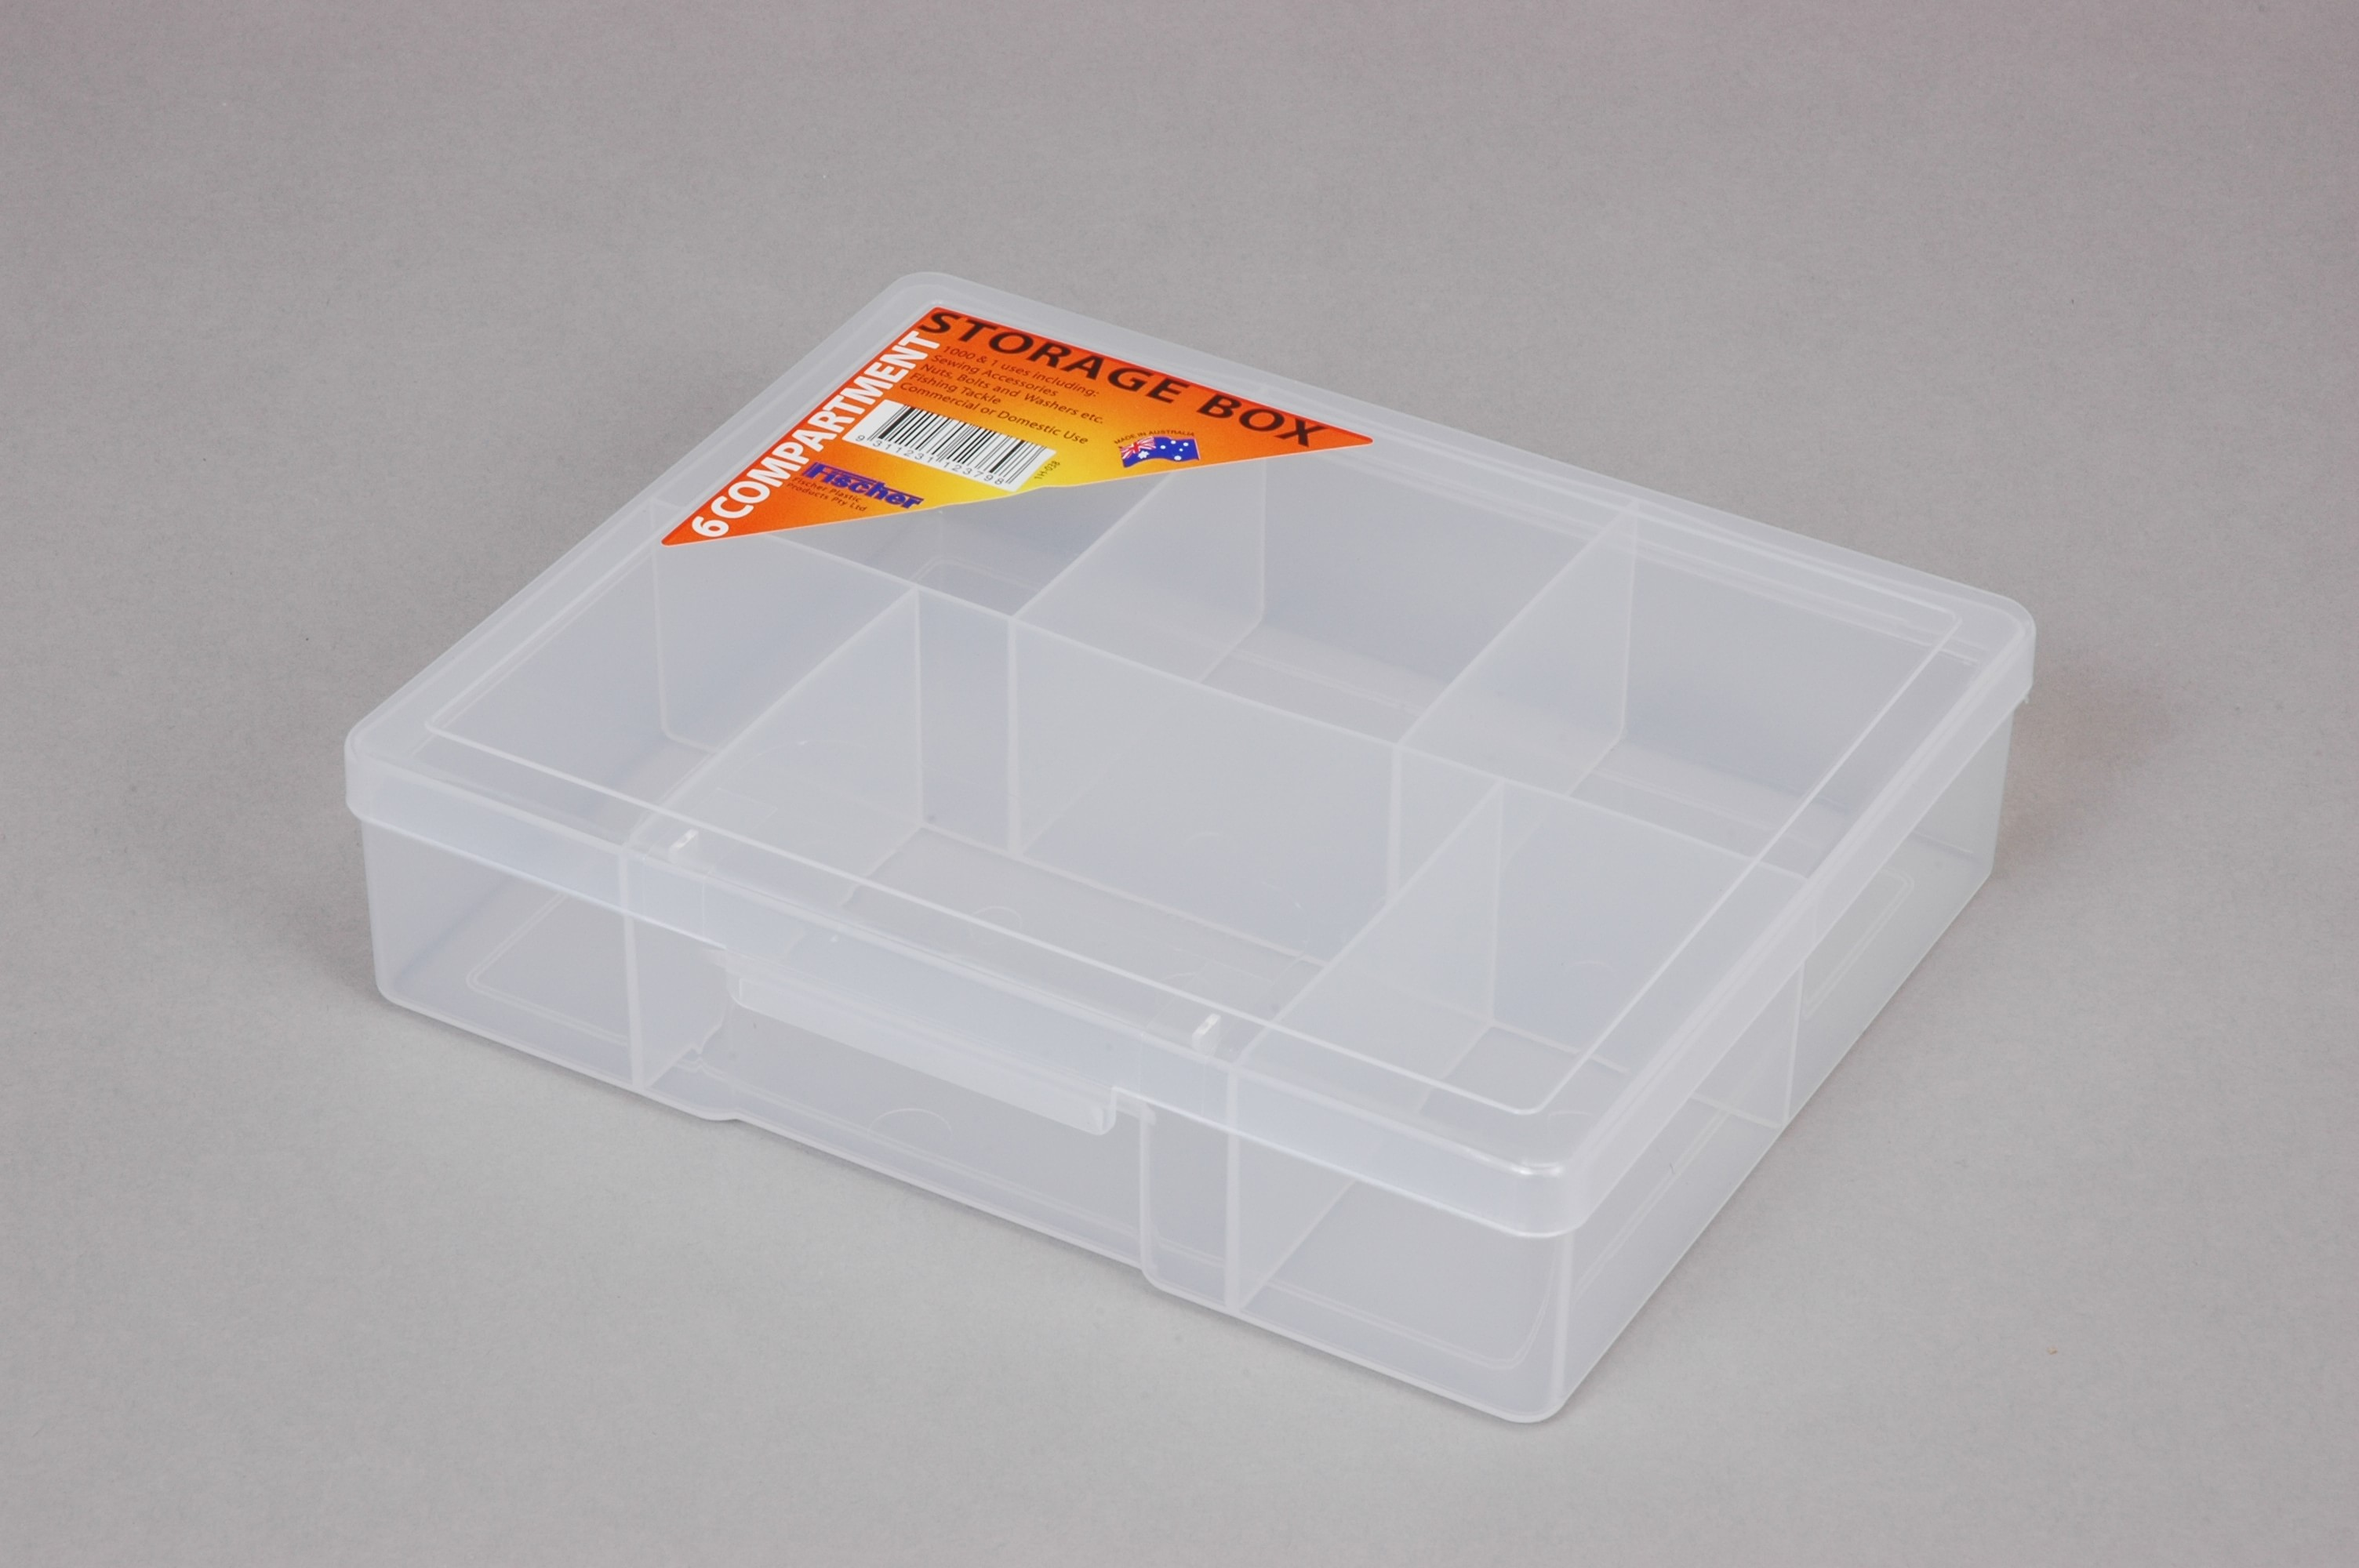 6 Compartment - Medium Storage Box